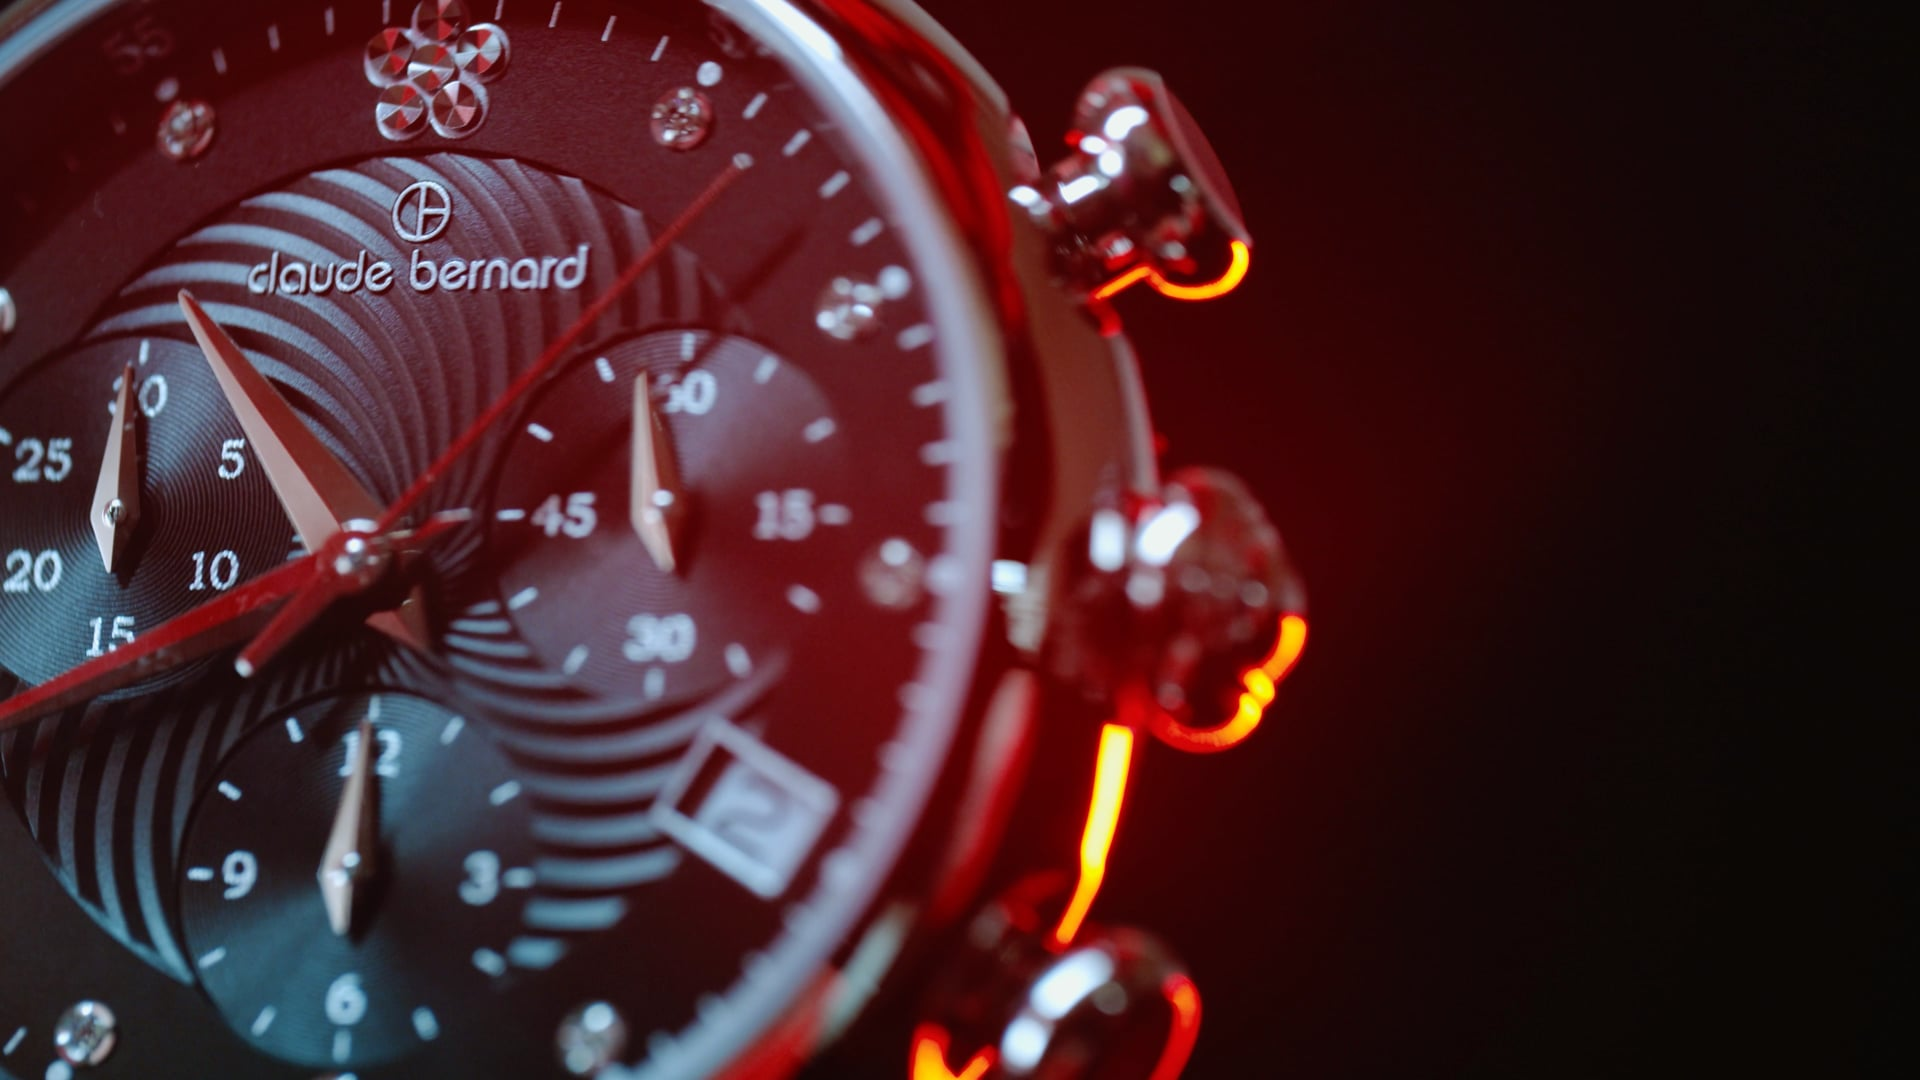 Claude Bernard- Make time for what you love